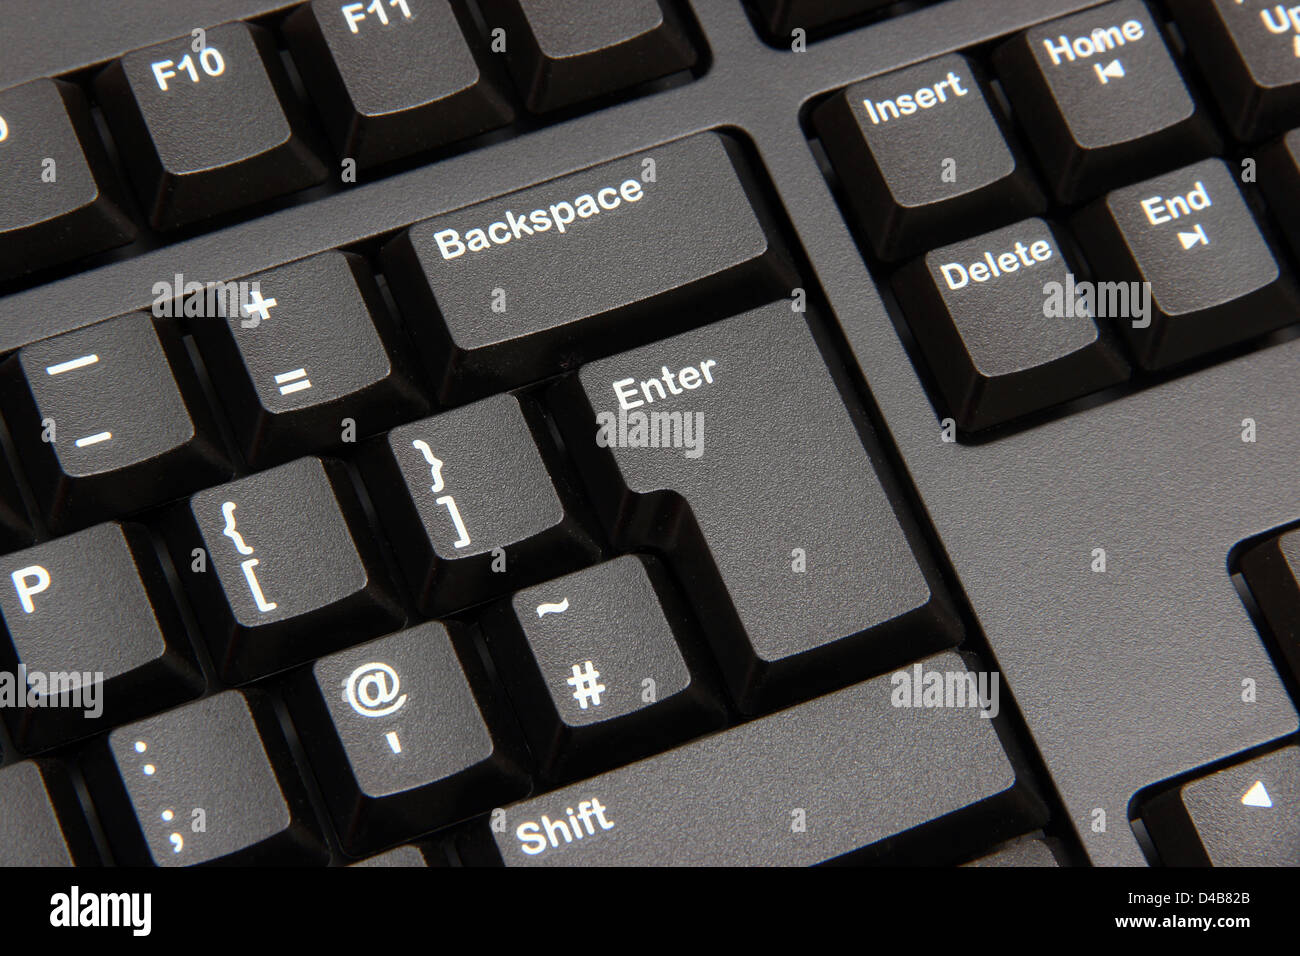 Close up of Enter button on computer keyboard - Stock Image